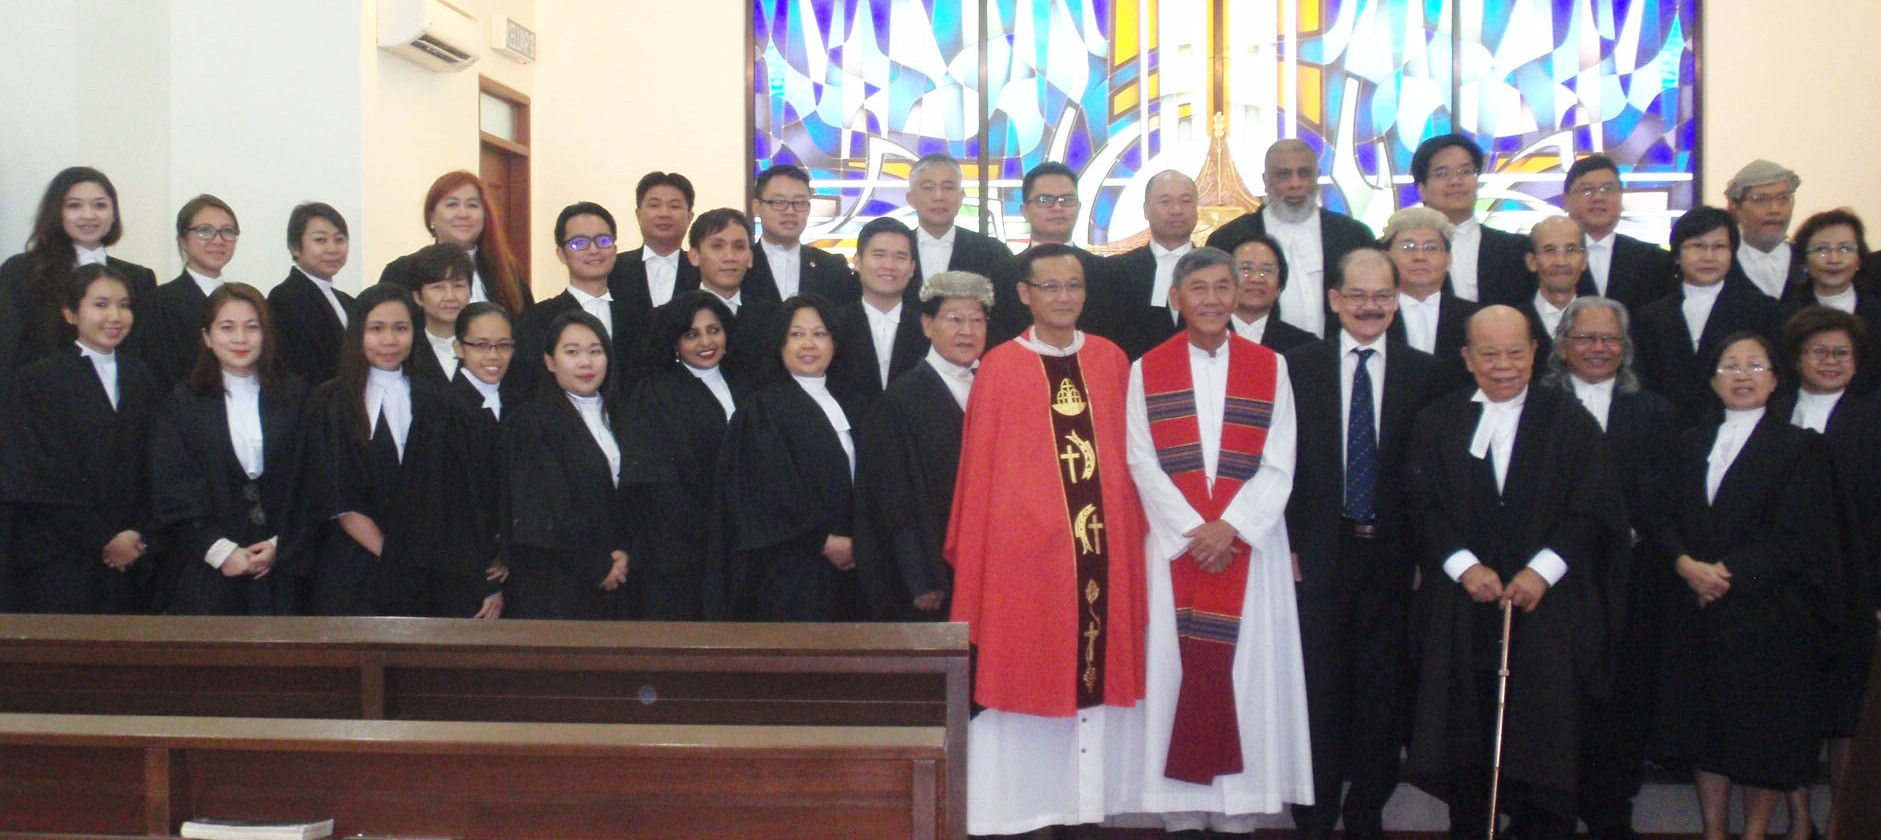 A section of the group photo taken at the end of the Mass.